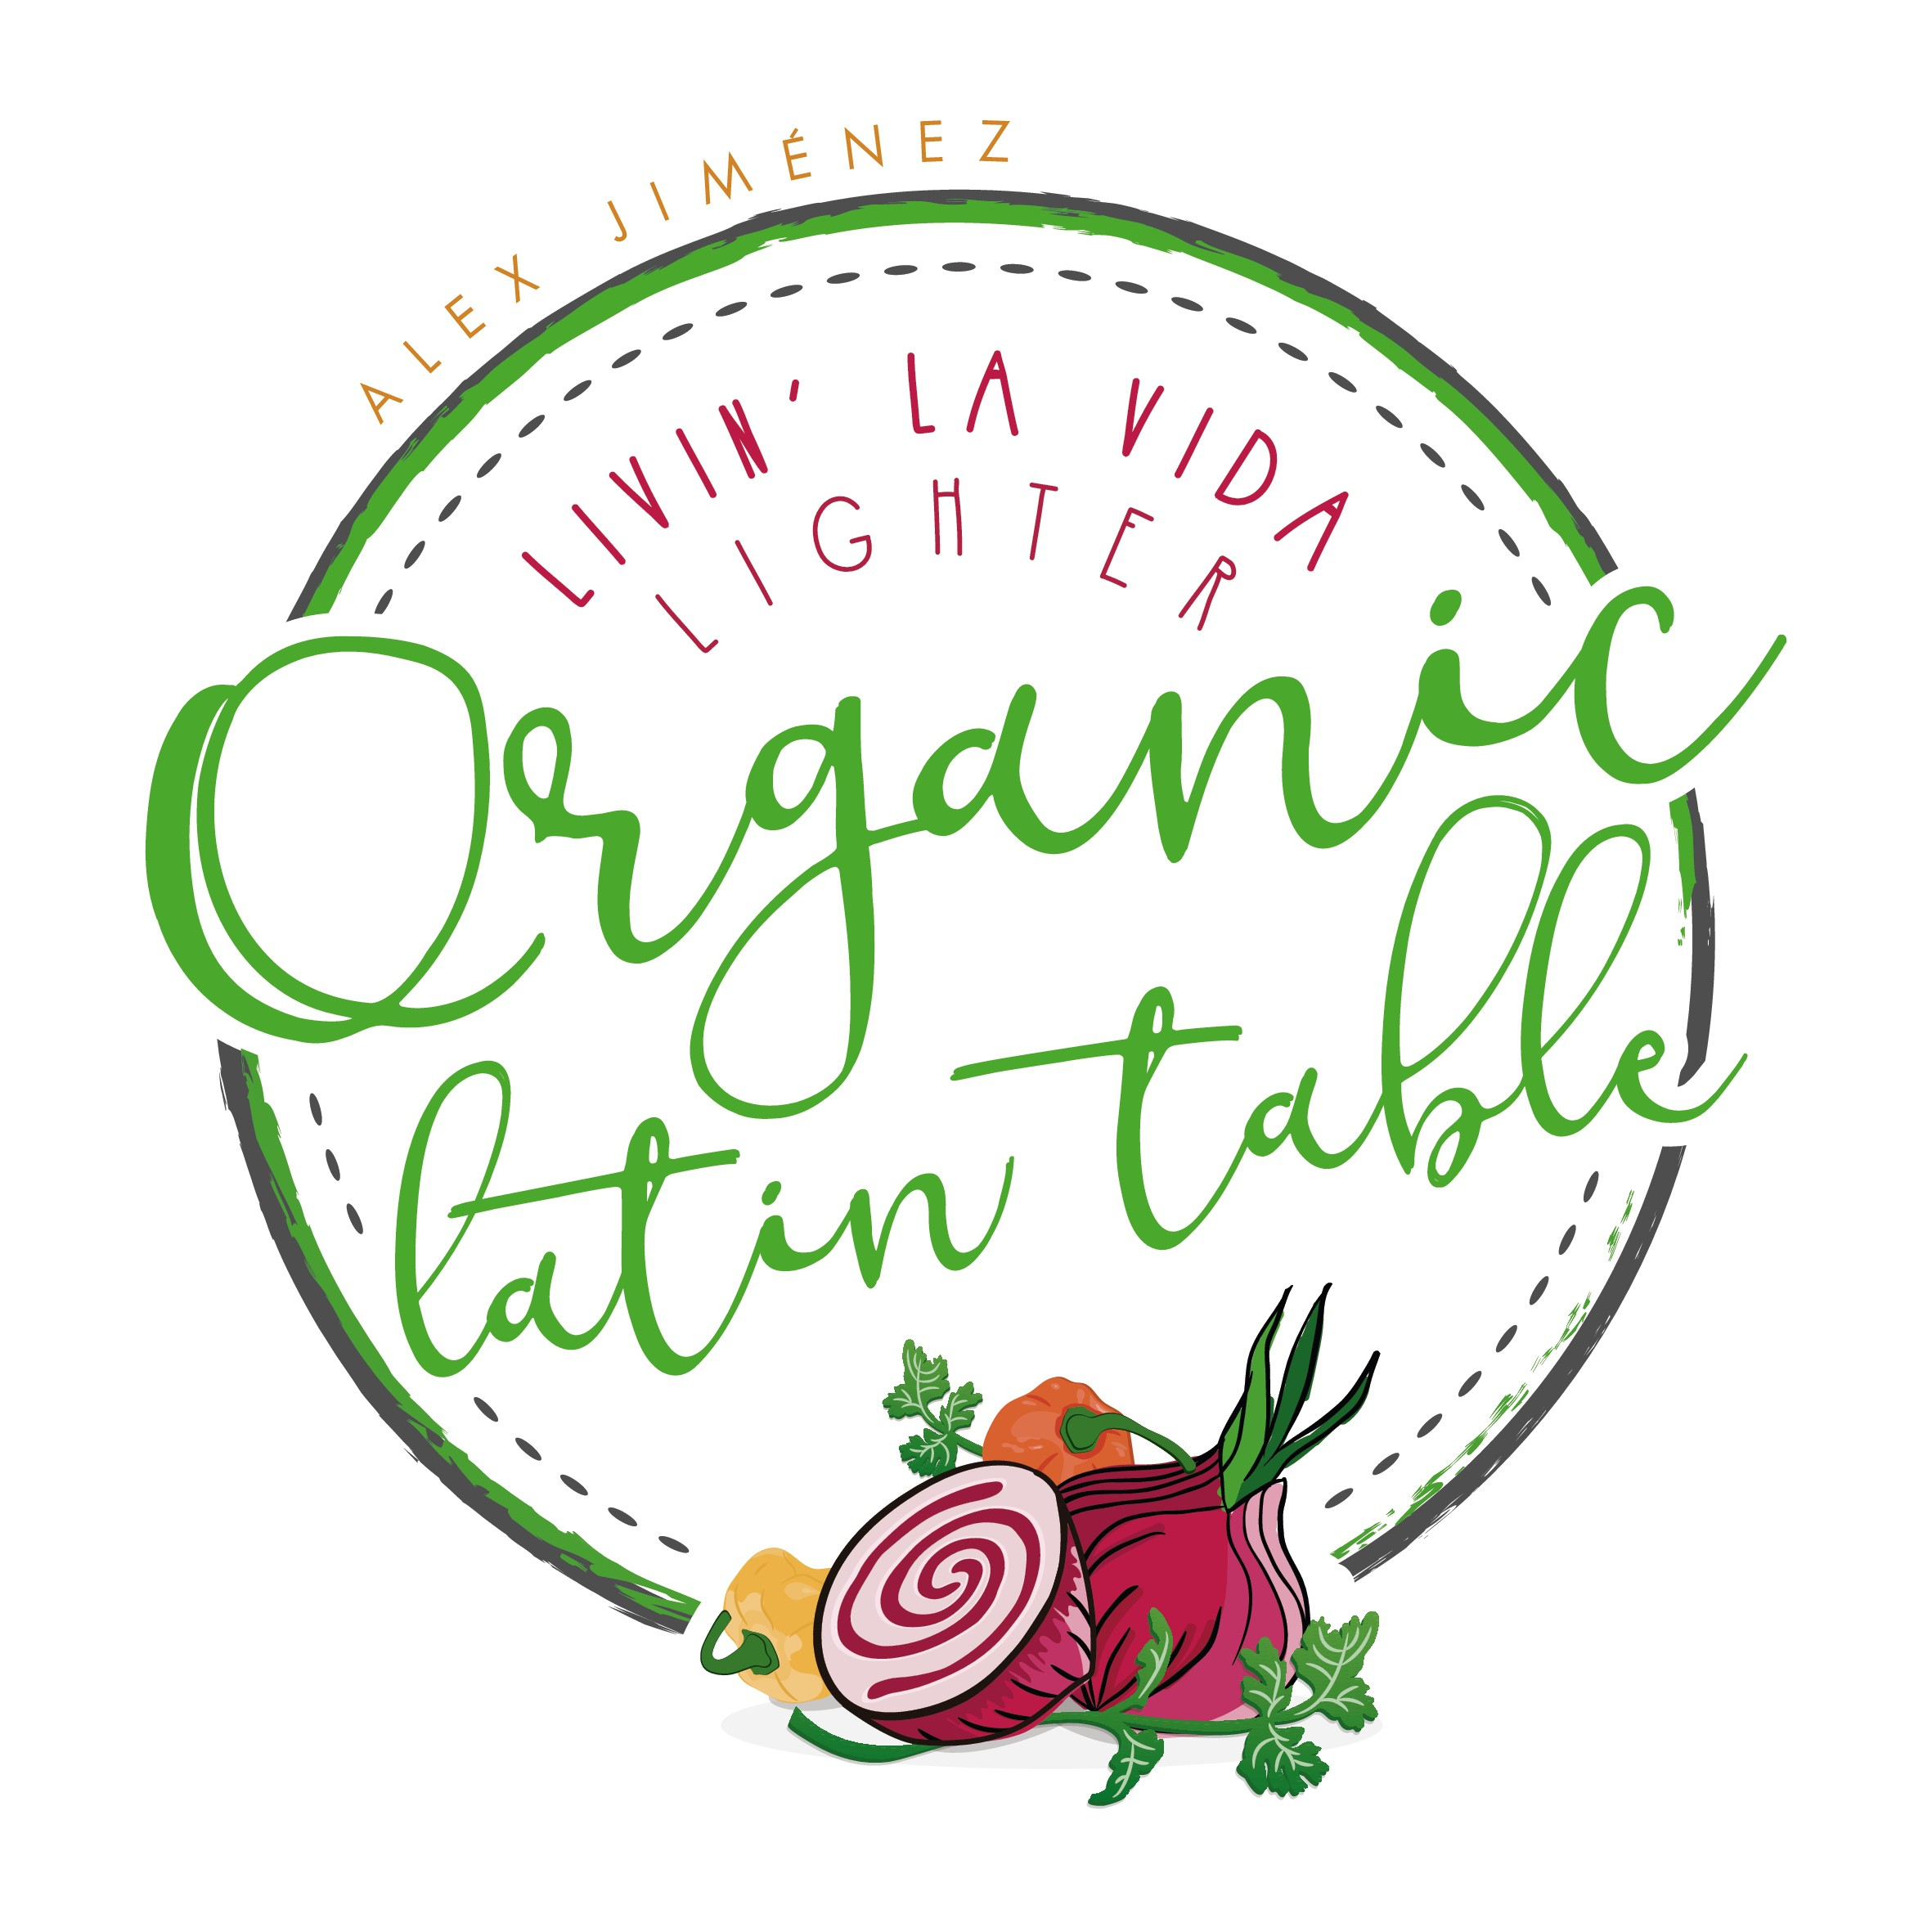 LOGO: OrganicLatinTable reinvents Latin American Cuisine to use healthier and cleaner ingredients